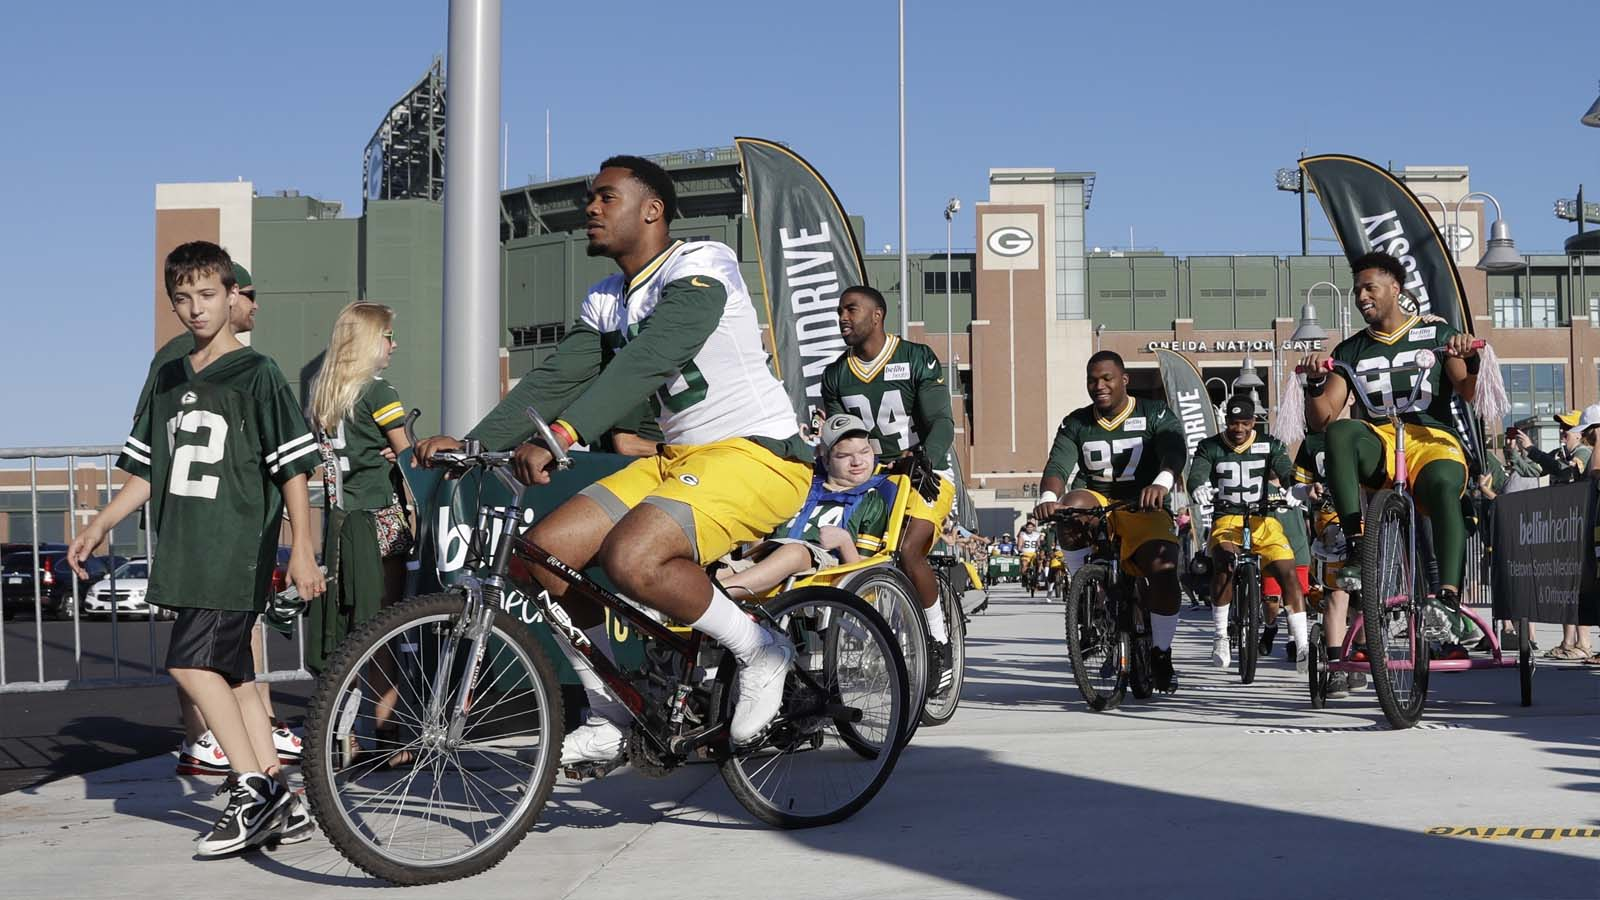 Green Bay Packers players ride bikes to training camp at Ray Nitschke Field in Ashwabenon, Wis., on Thursday, July 27, 2017.